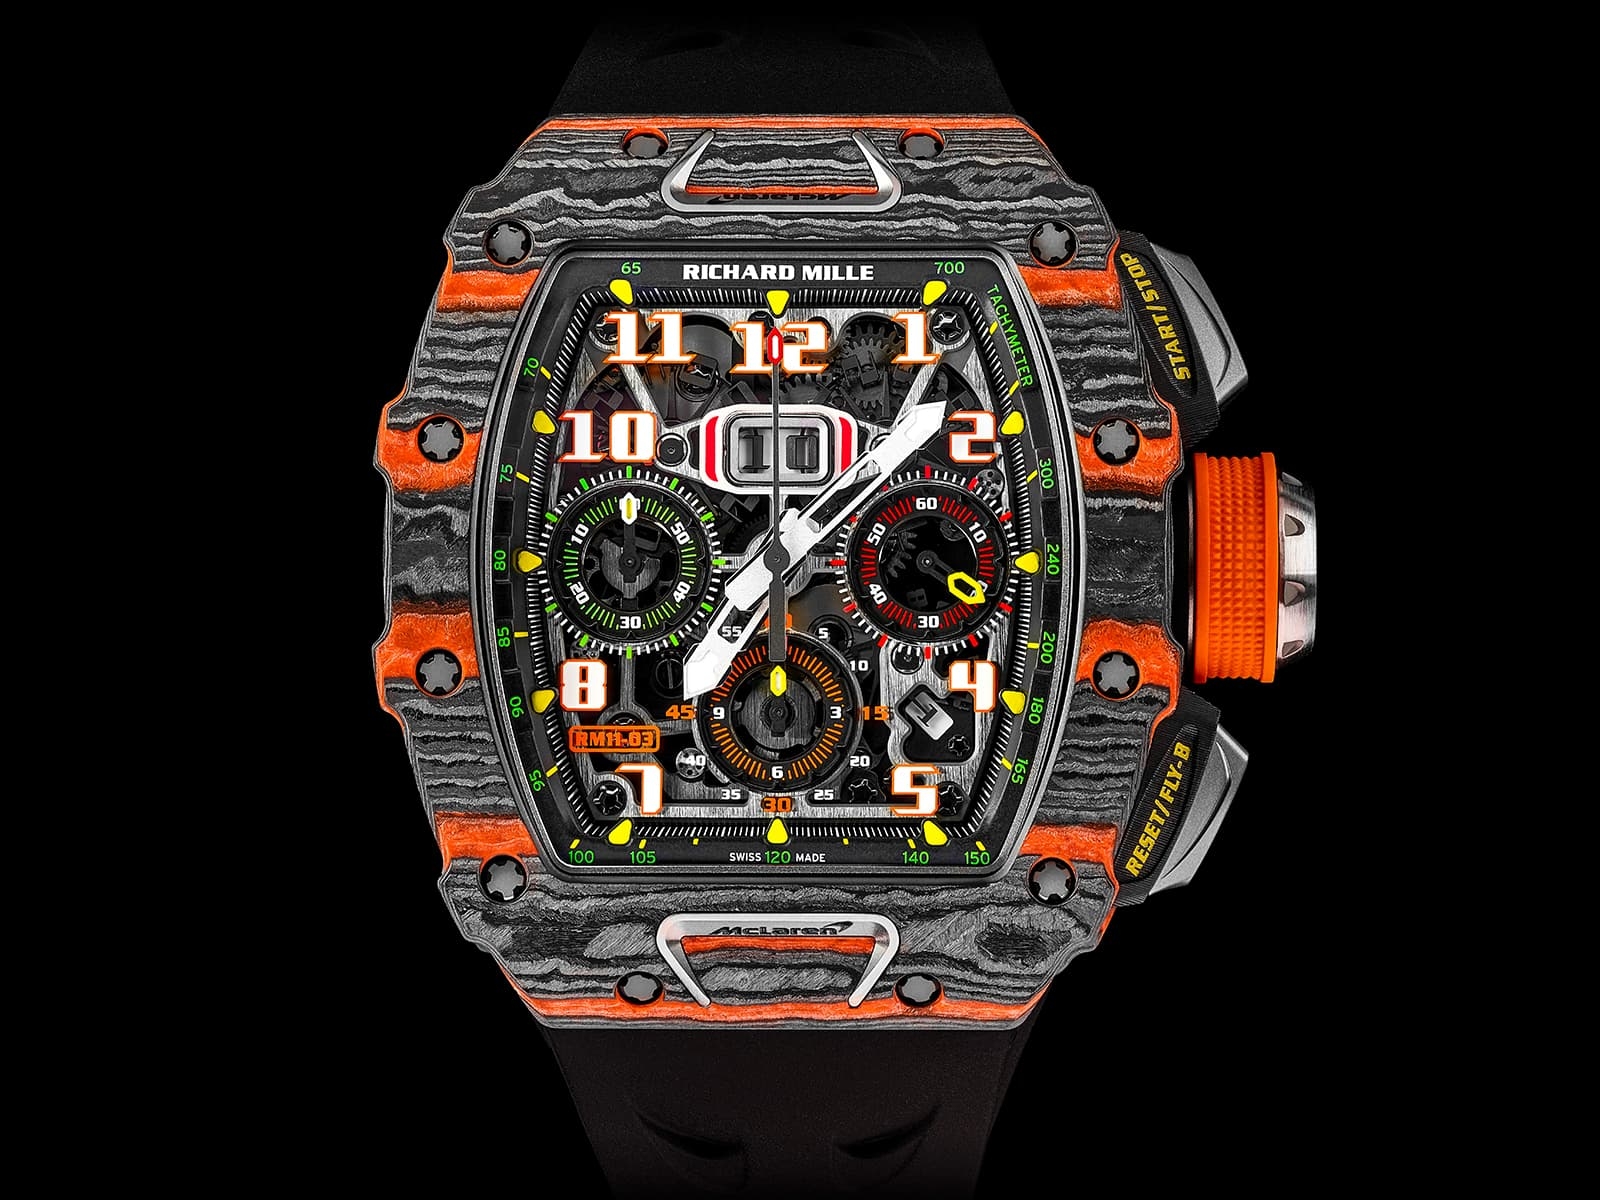 richard-mille-rm-11-03-mcLaren-automatic-flyback-chronograph-15-.jpg